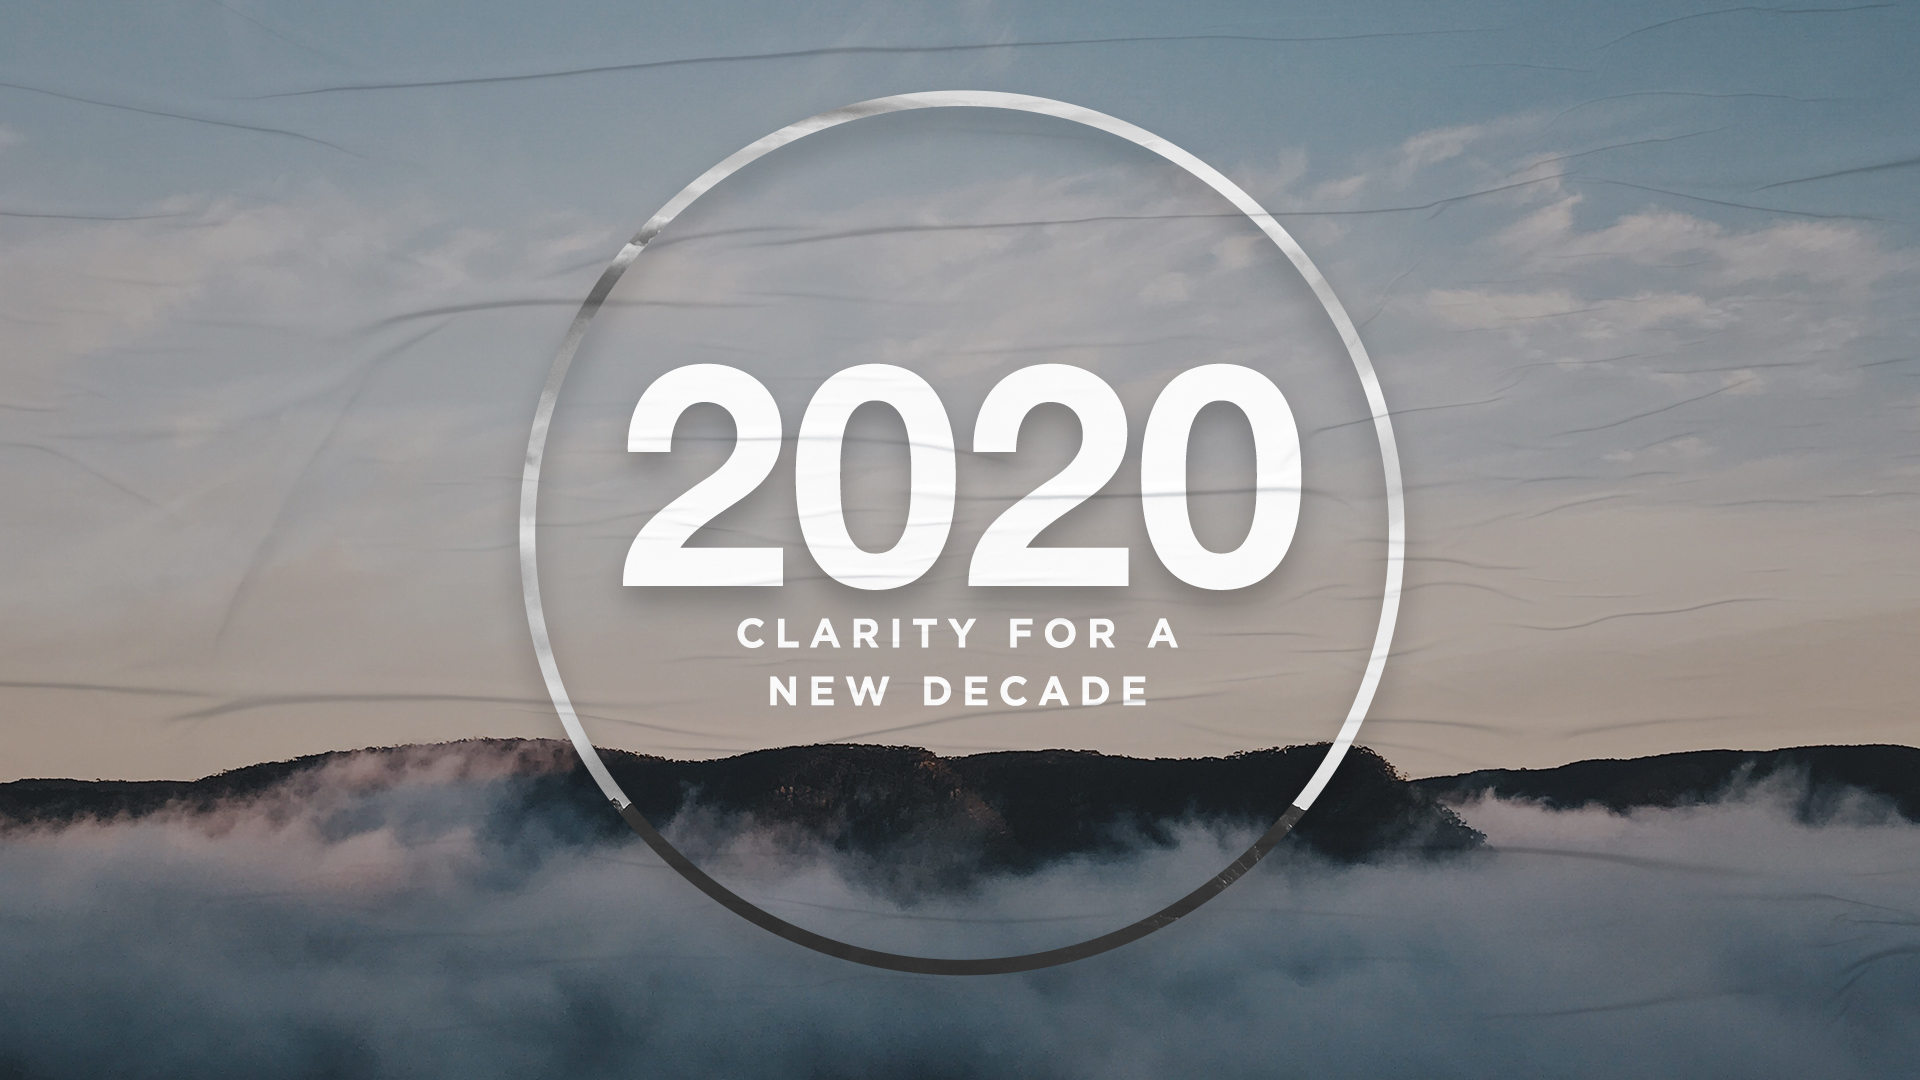 2020 Clarity for a new decade